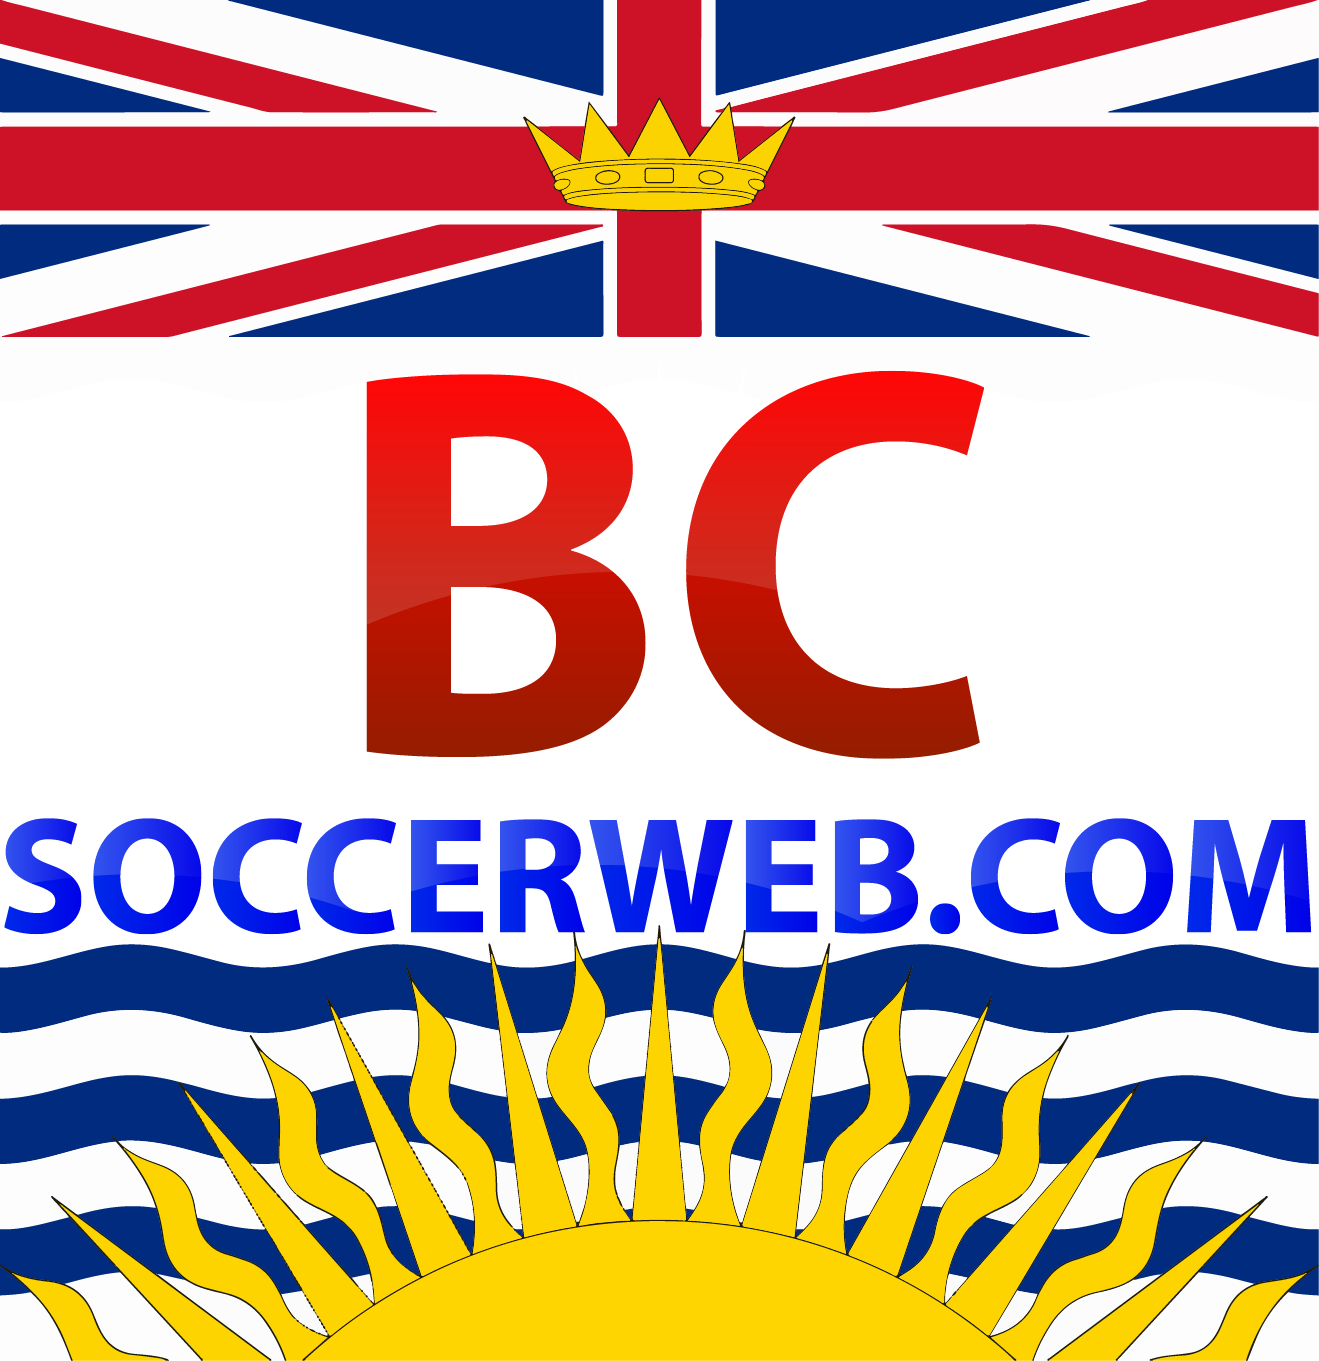 Bc soccer web the hub for soccer news from british columbia bc soccer web the hub for soccer news from british columbia canada logo solutioingenieria Image collections